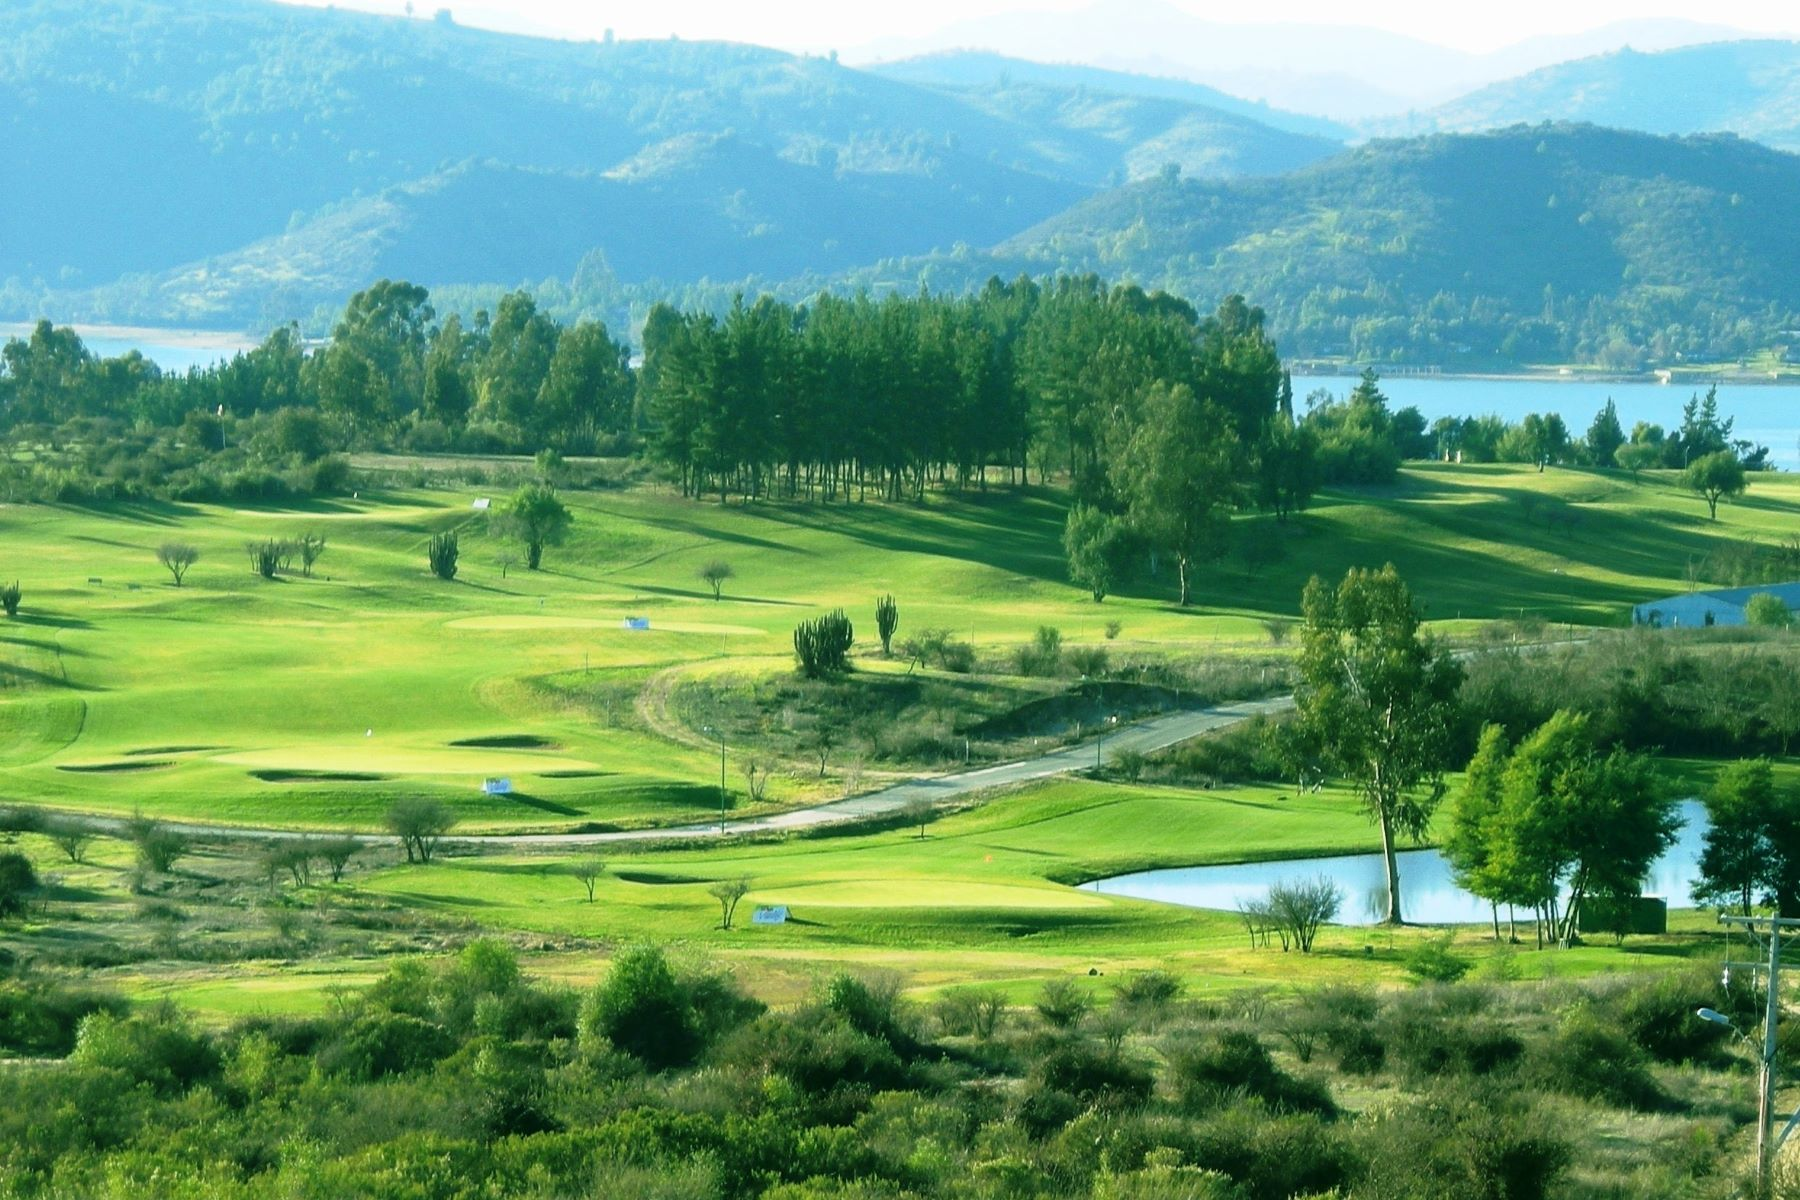 para Venda às Marina Golf Rapel Complex Other Libertador General Bernardo O Higgins, Libertador General Bernardo O Higgins Chile